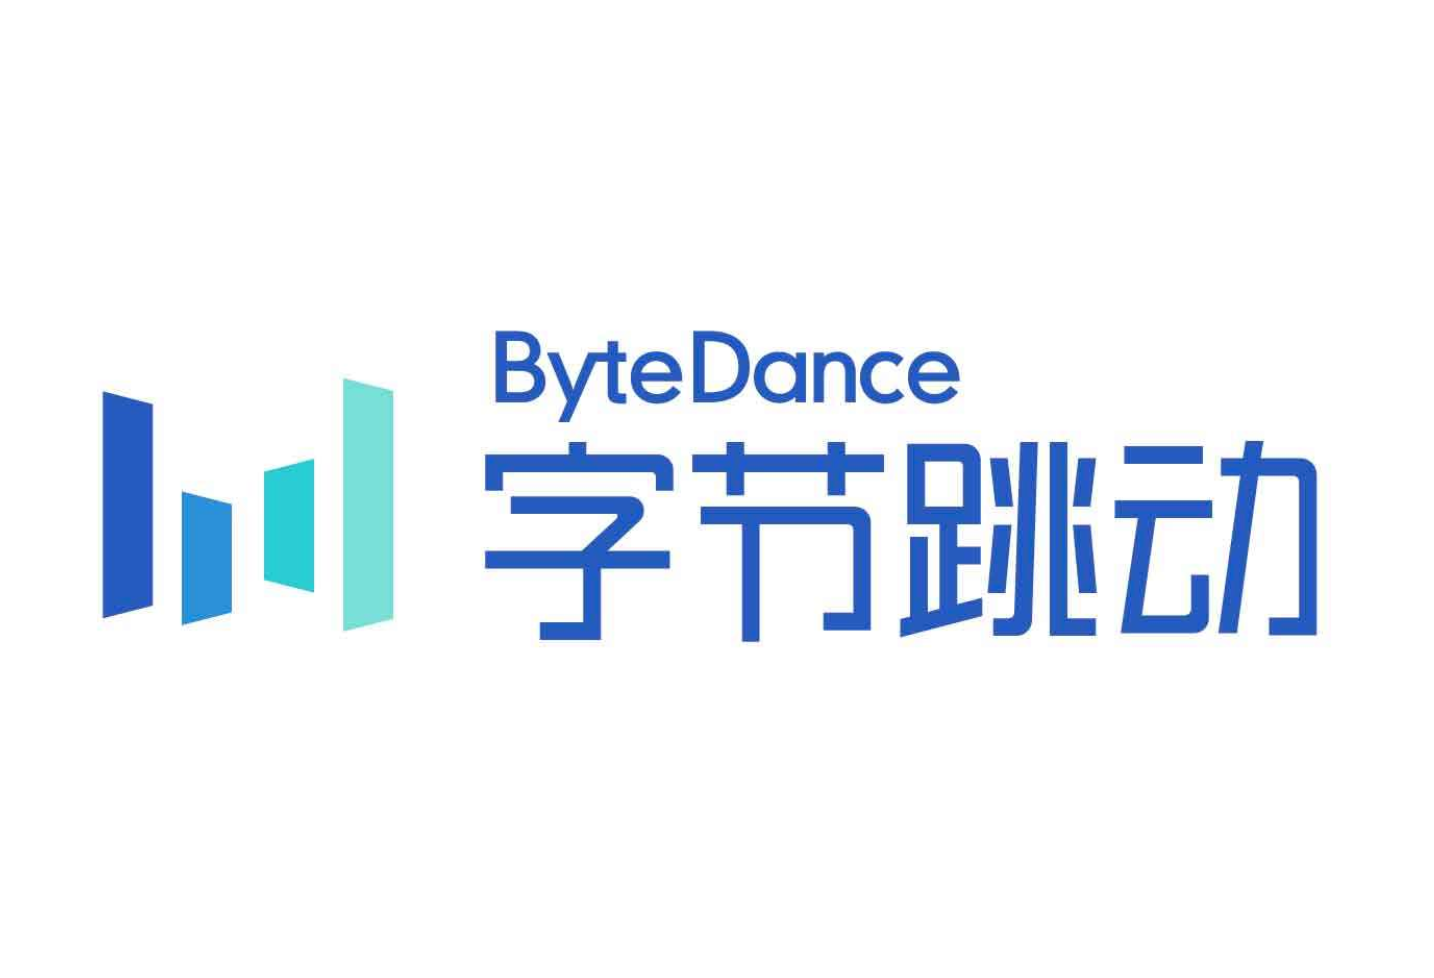 TikTok owner ByteDance said to consider listing China business in HK or Shanghai-cnTechPost